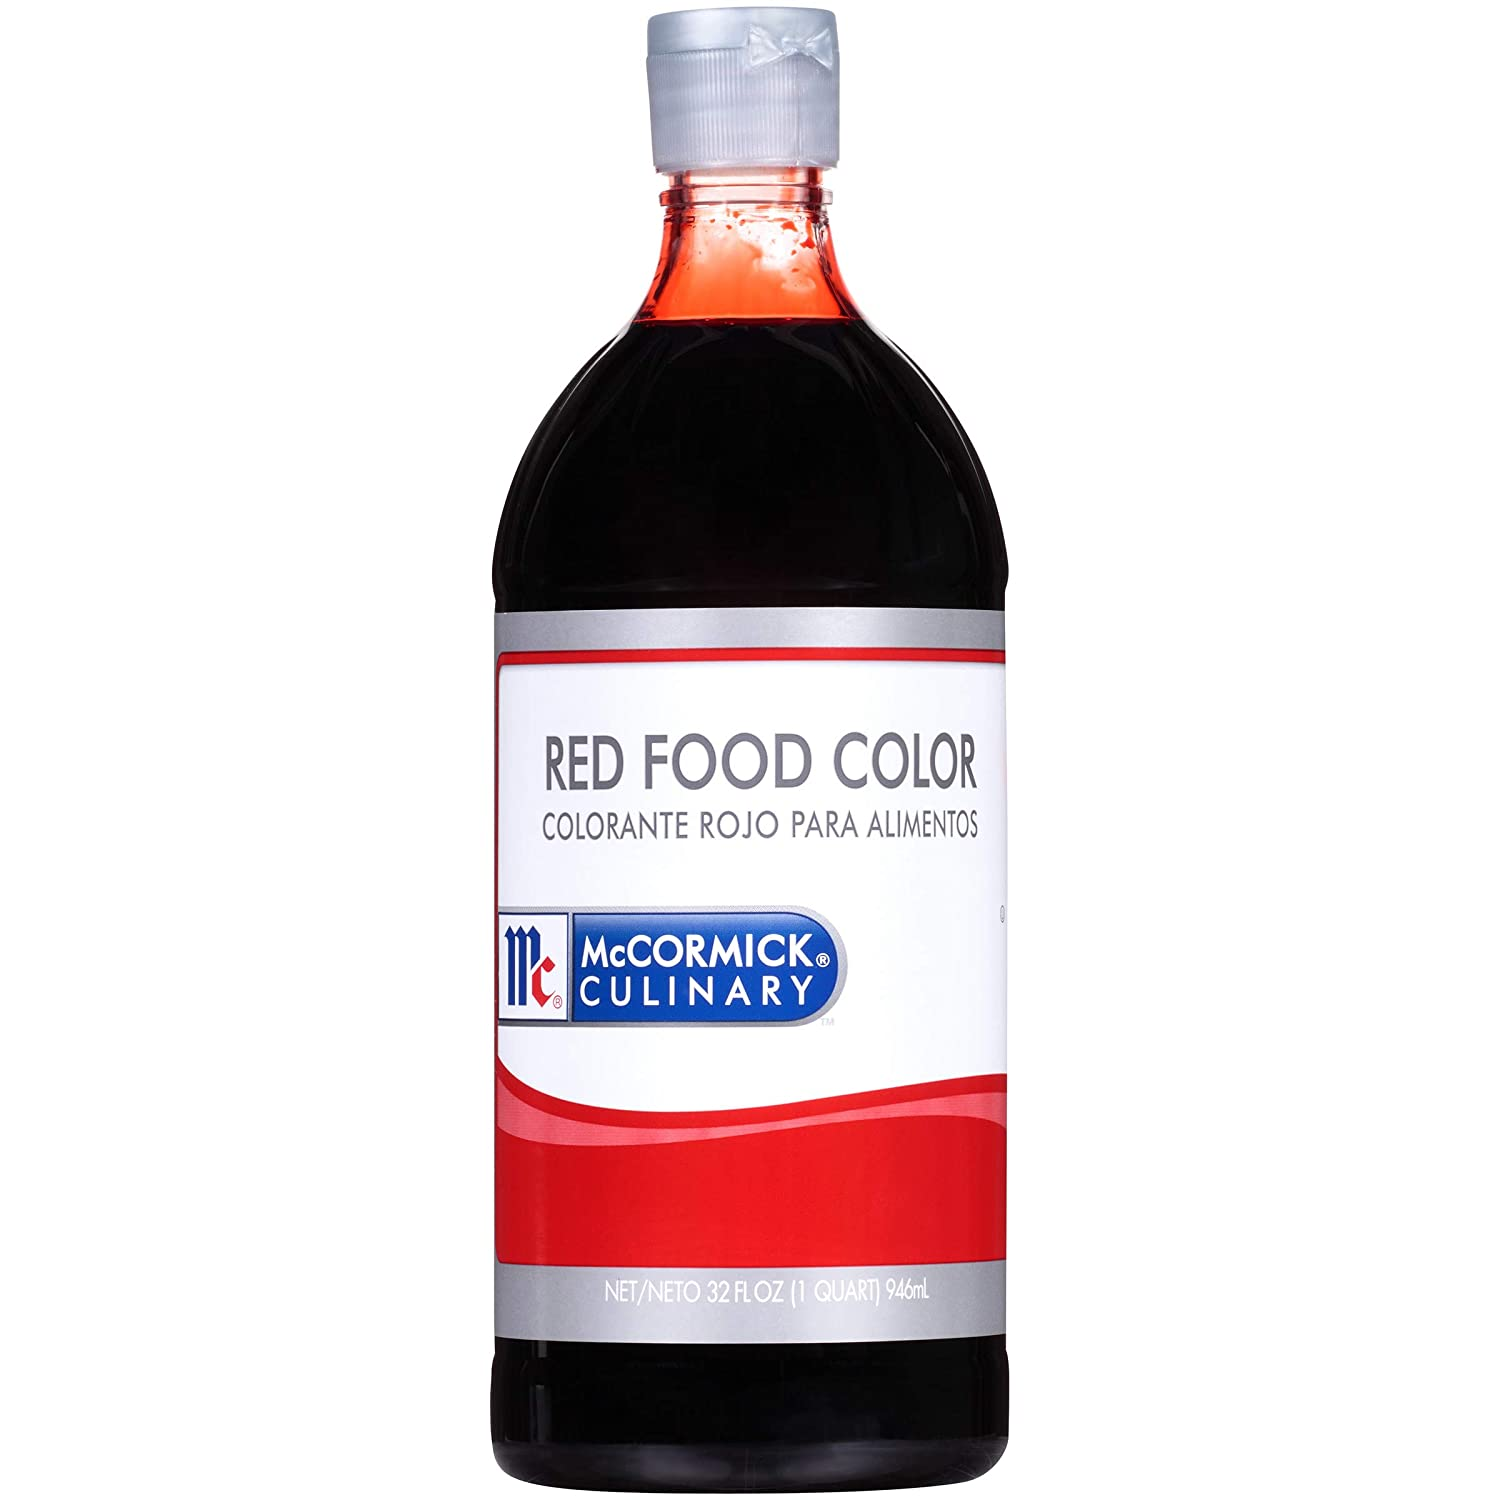 McCormick Culinary Red Food Color, 1 qt